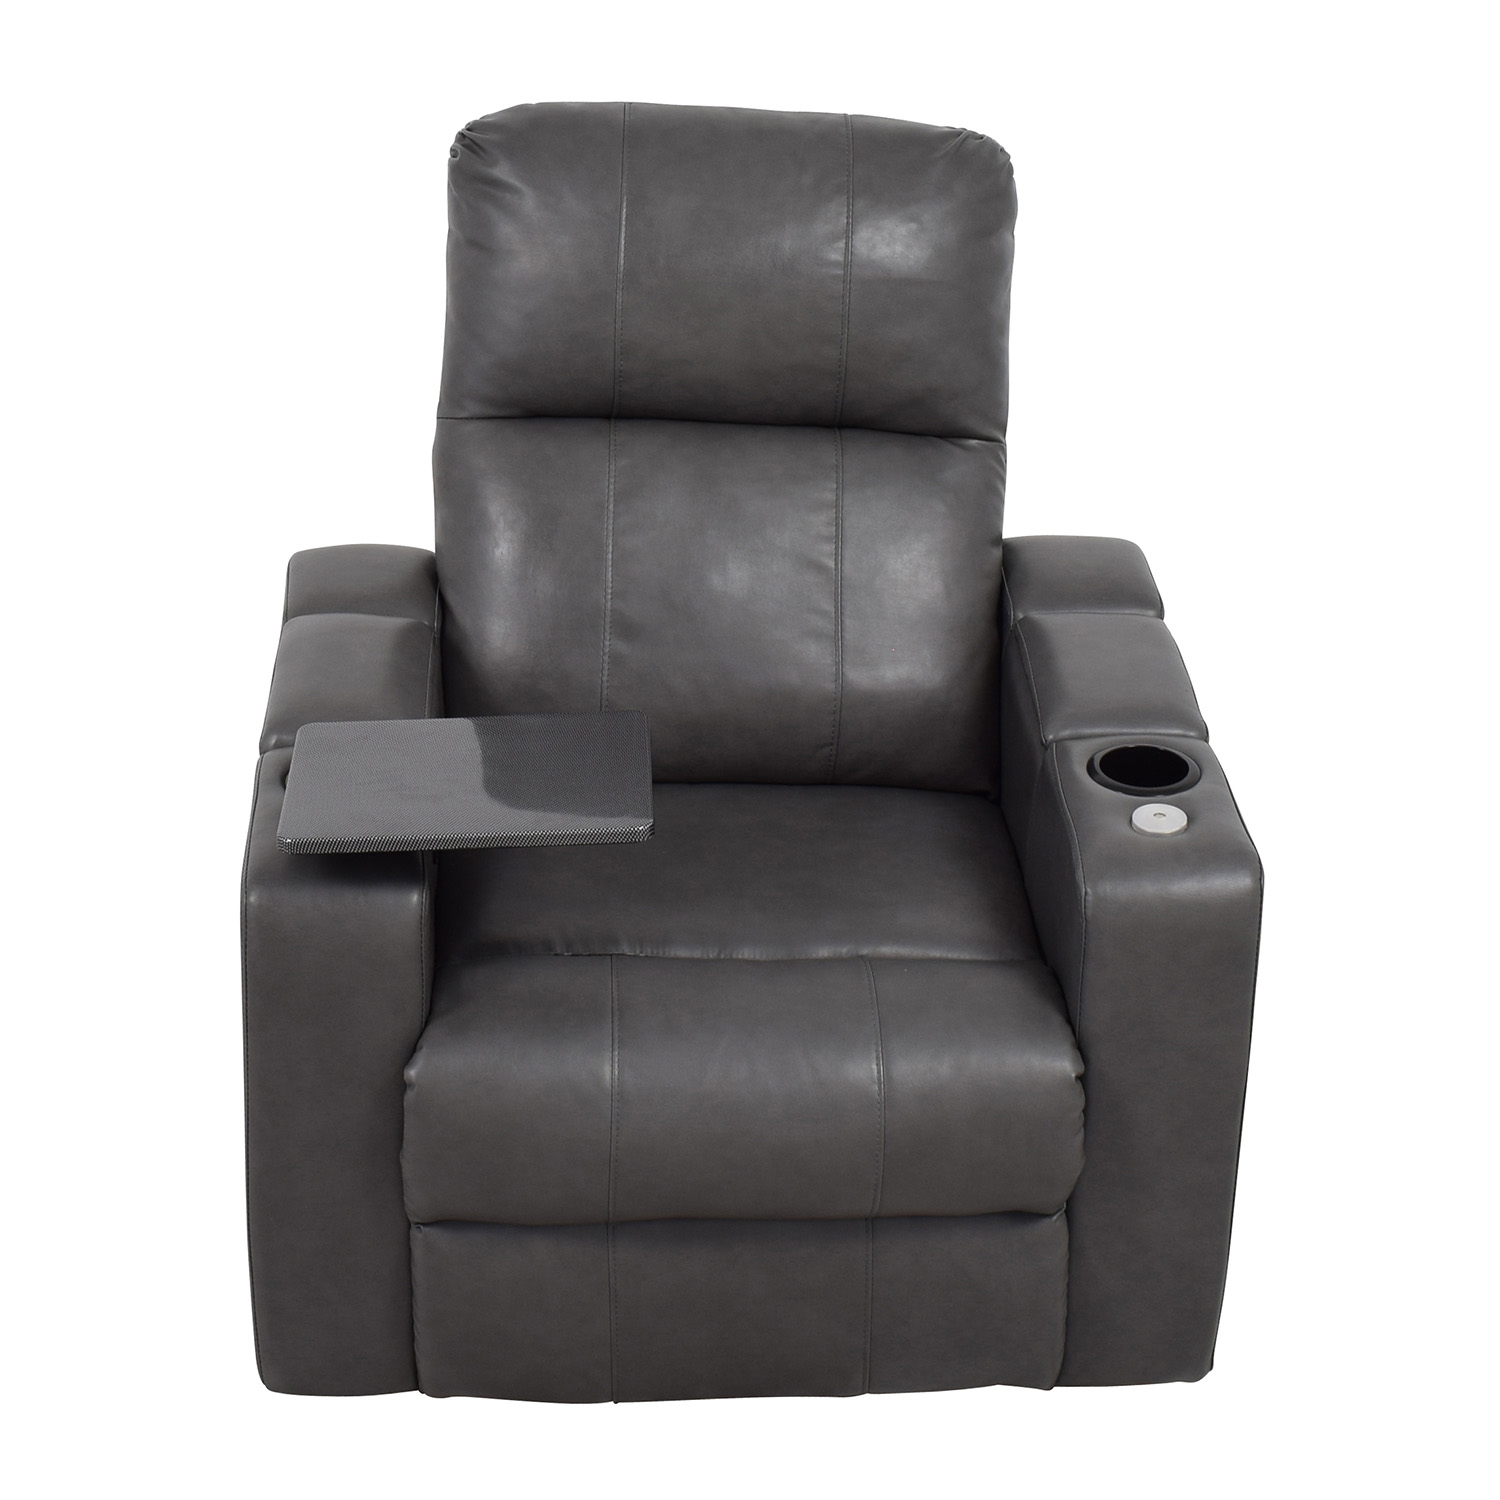 Recliners Used Recliners For Sale